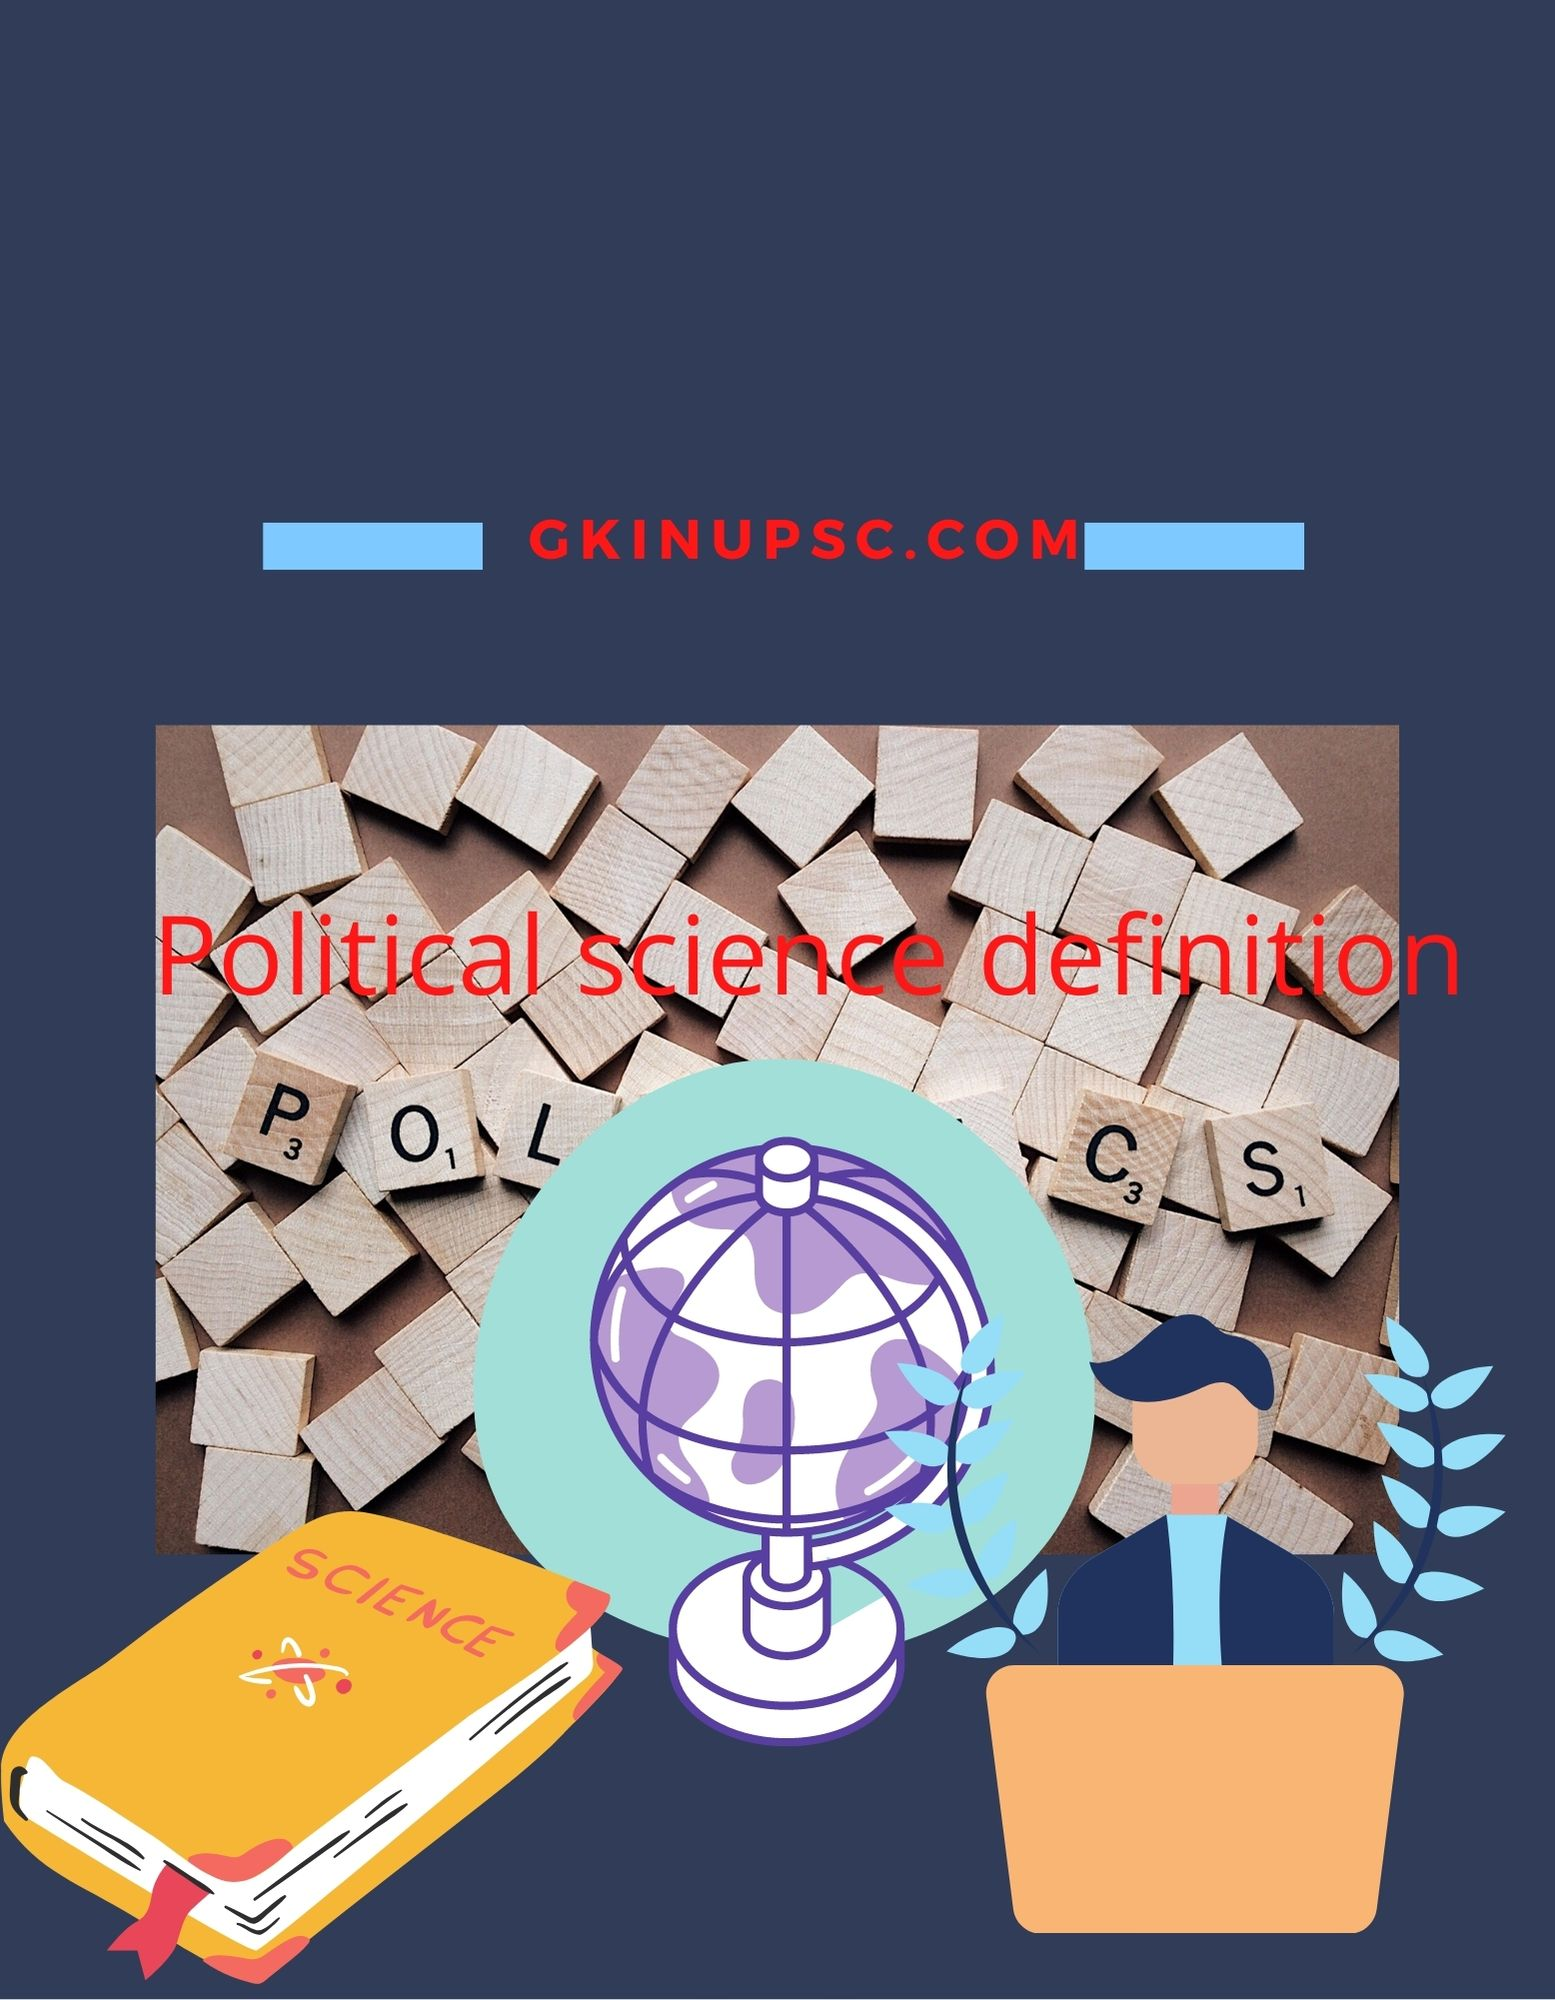 Political science definition